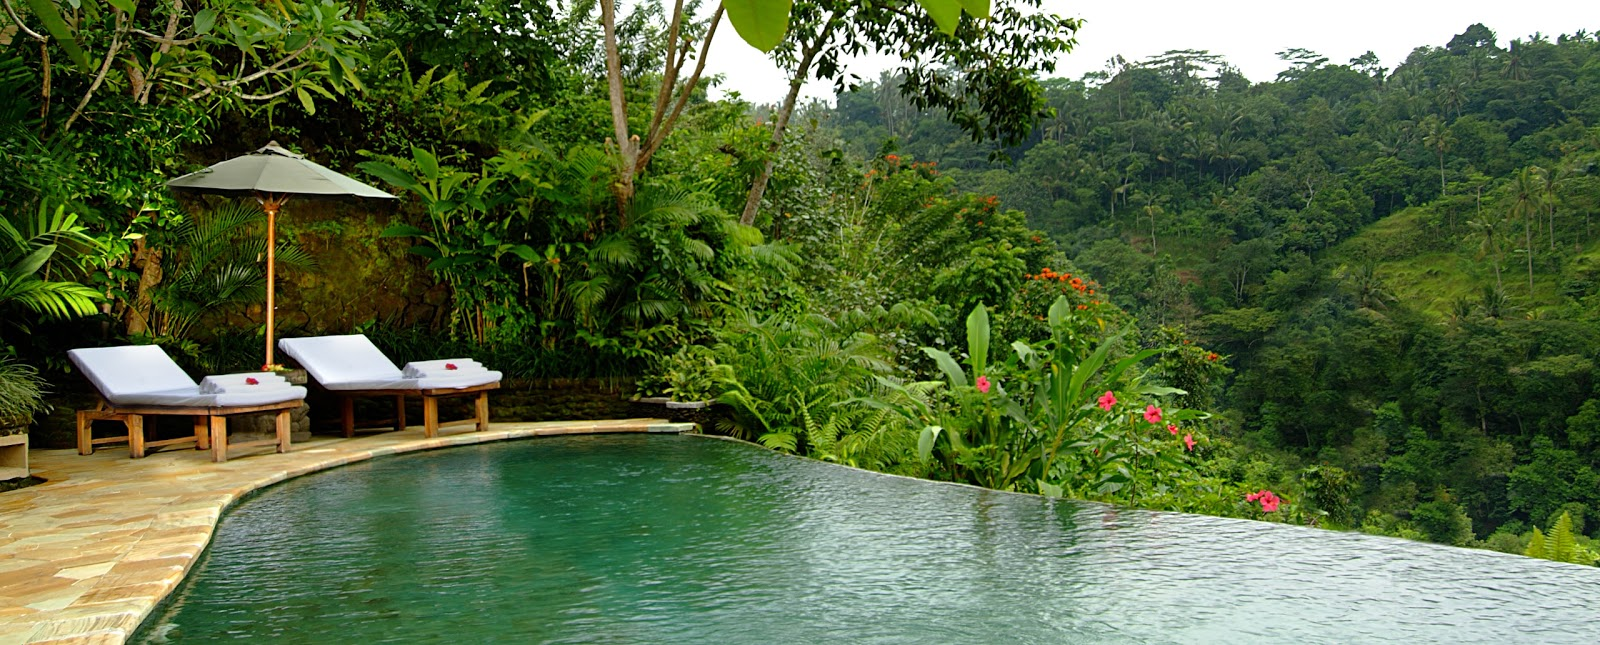 Pictures of bali beautiful hotel in bali royal pita maha for Garden pool villa ubud